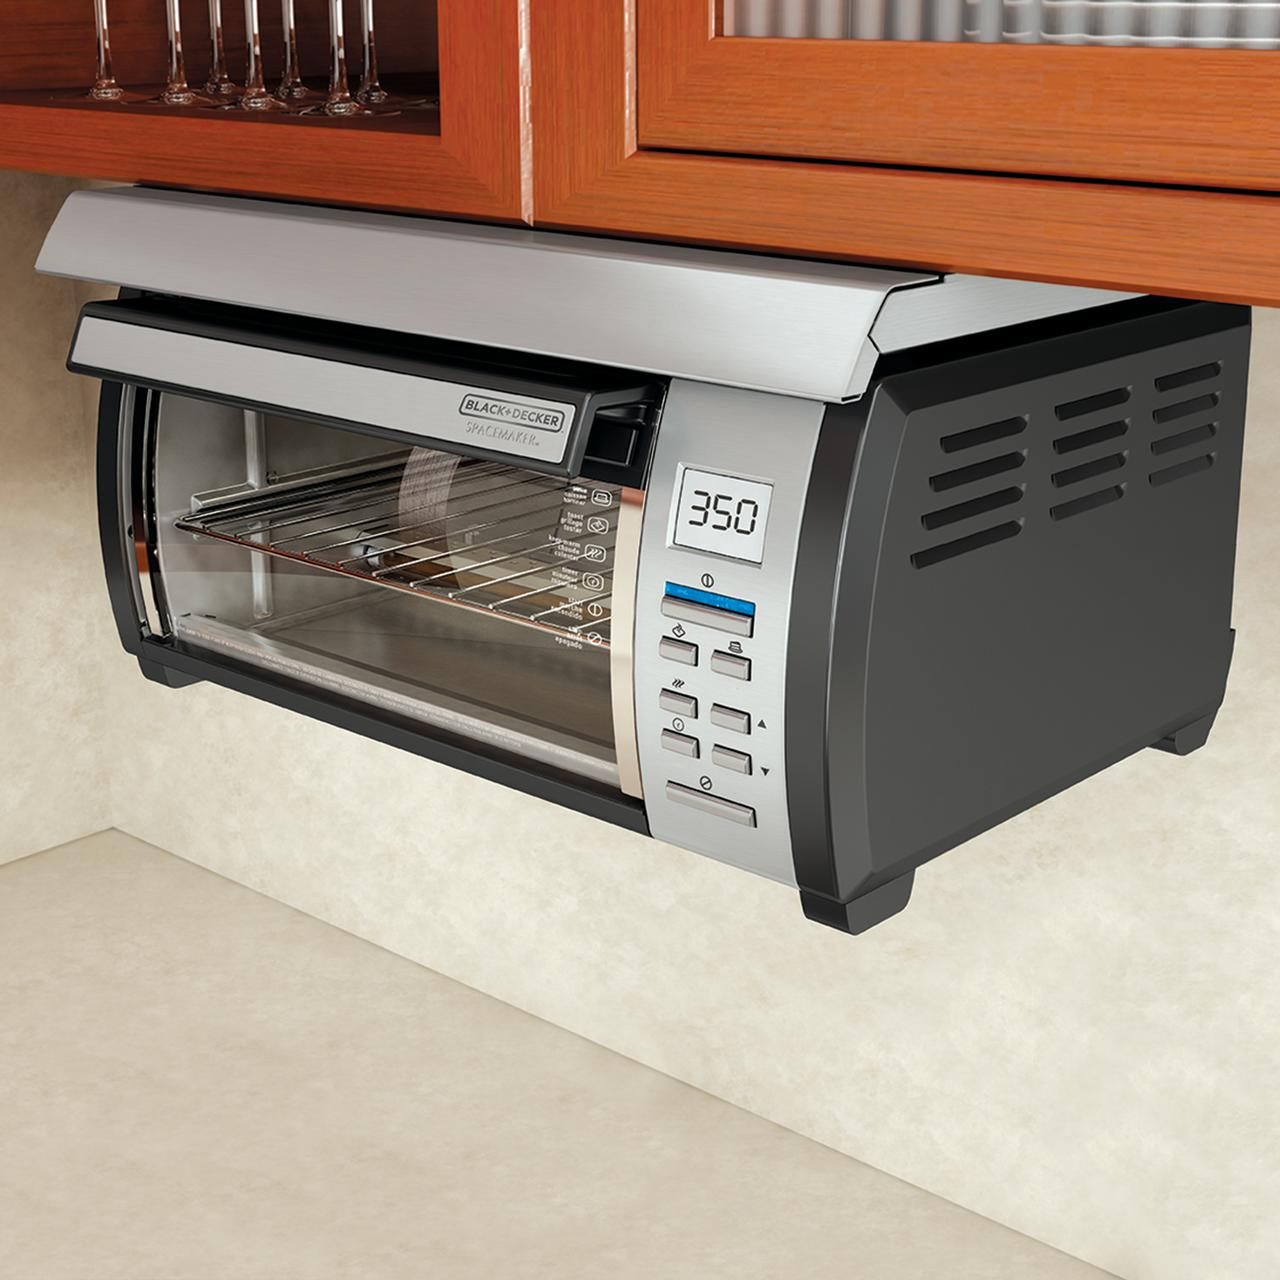 BLACK+DECKER SpaceMaker Under-Counter Toaster Oven, Black/Silver, TROS1000D